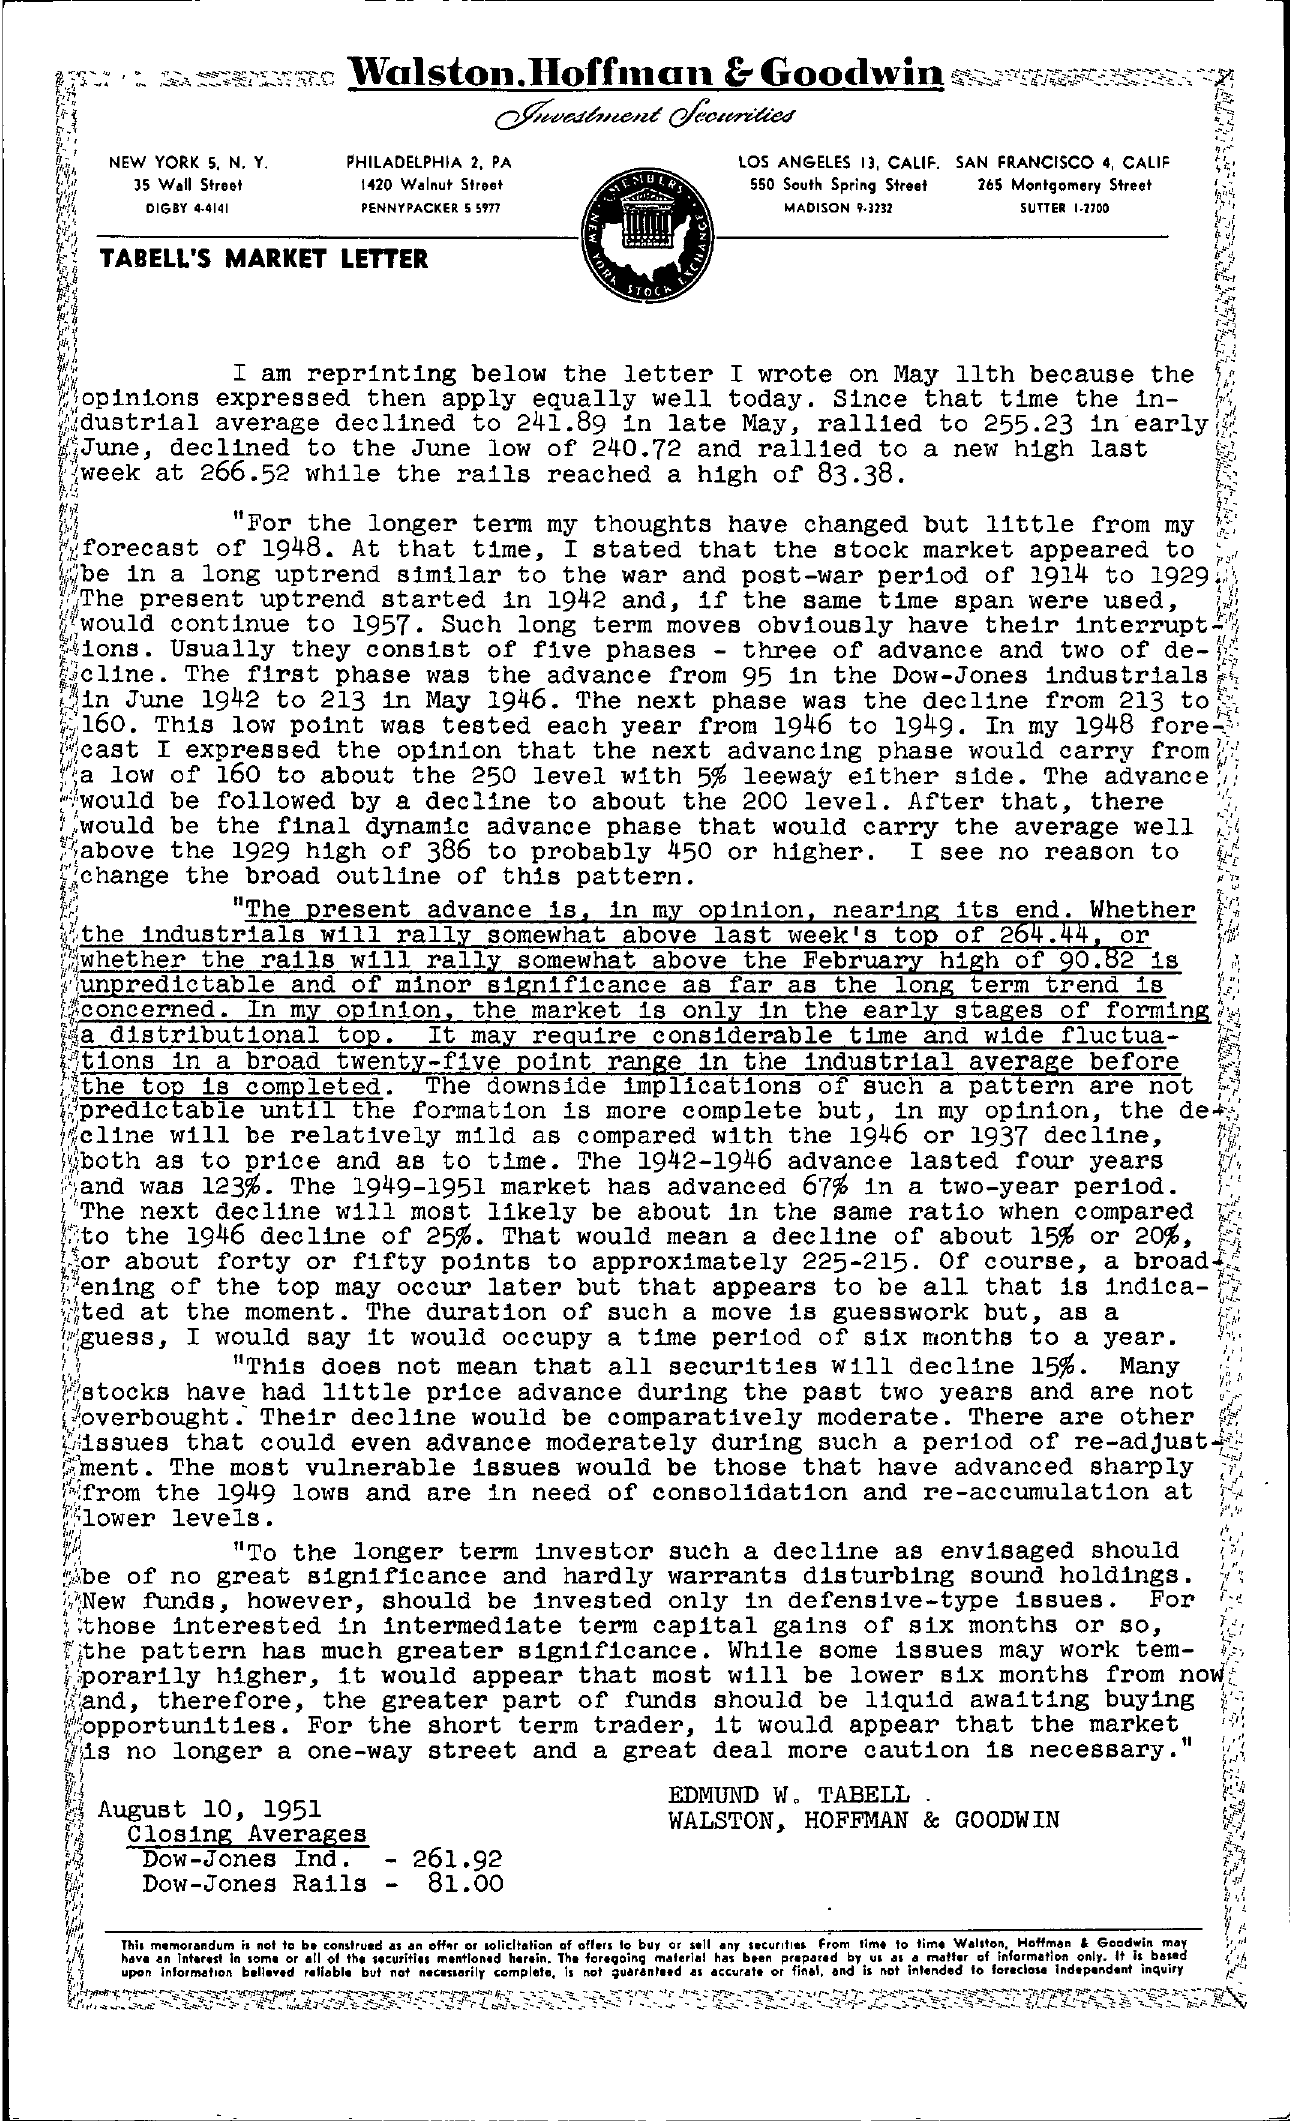 Tabell's Market Letter - August 10, 1951